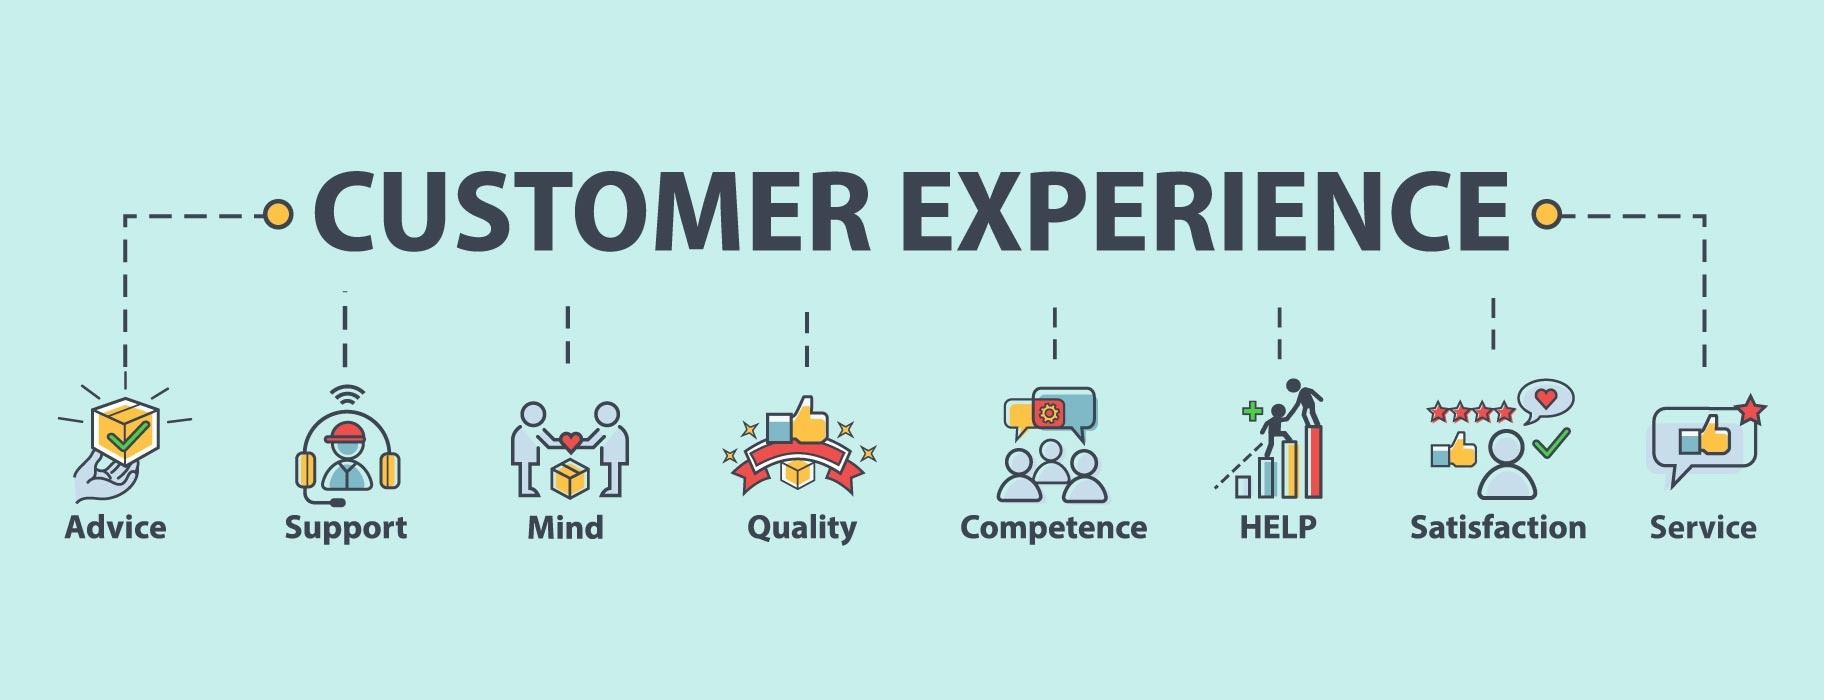 Customer Satisfaction for Better Experience